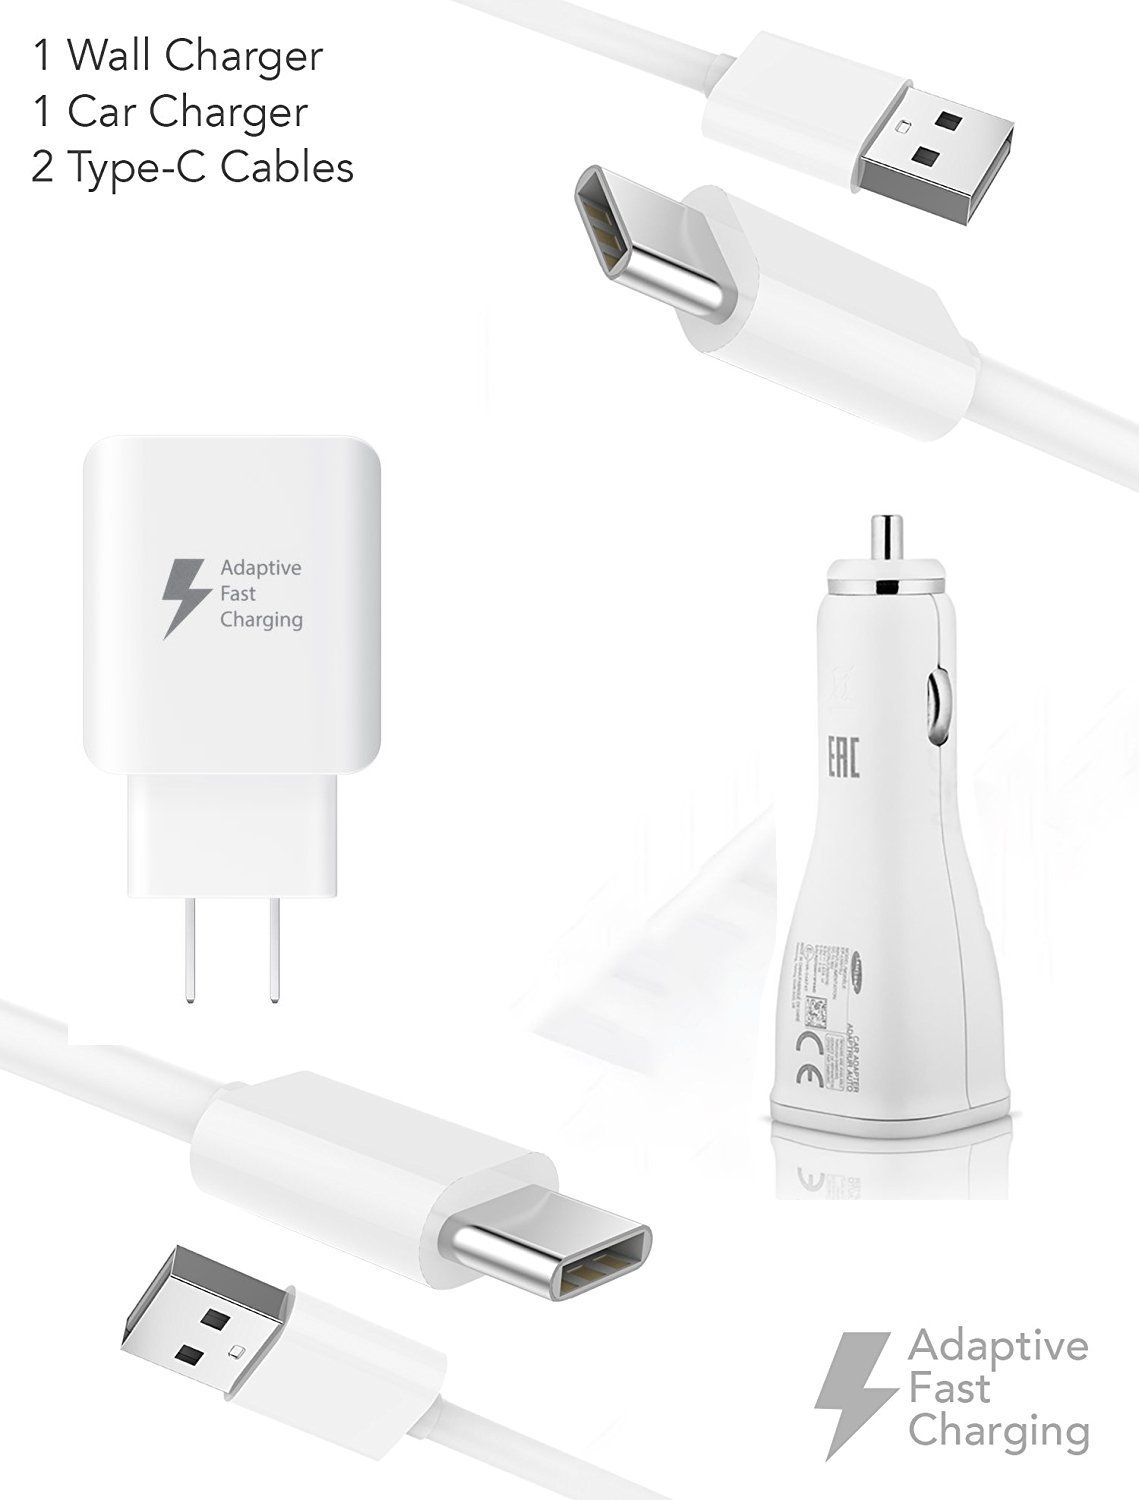 Quick Adaptive Z981 Turbo 18W Wall & Car Dual-Port USB Kit with (2) USB Type-C Cables!